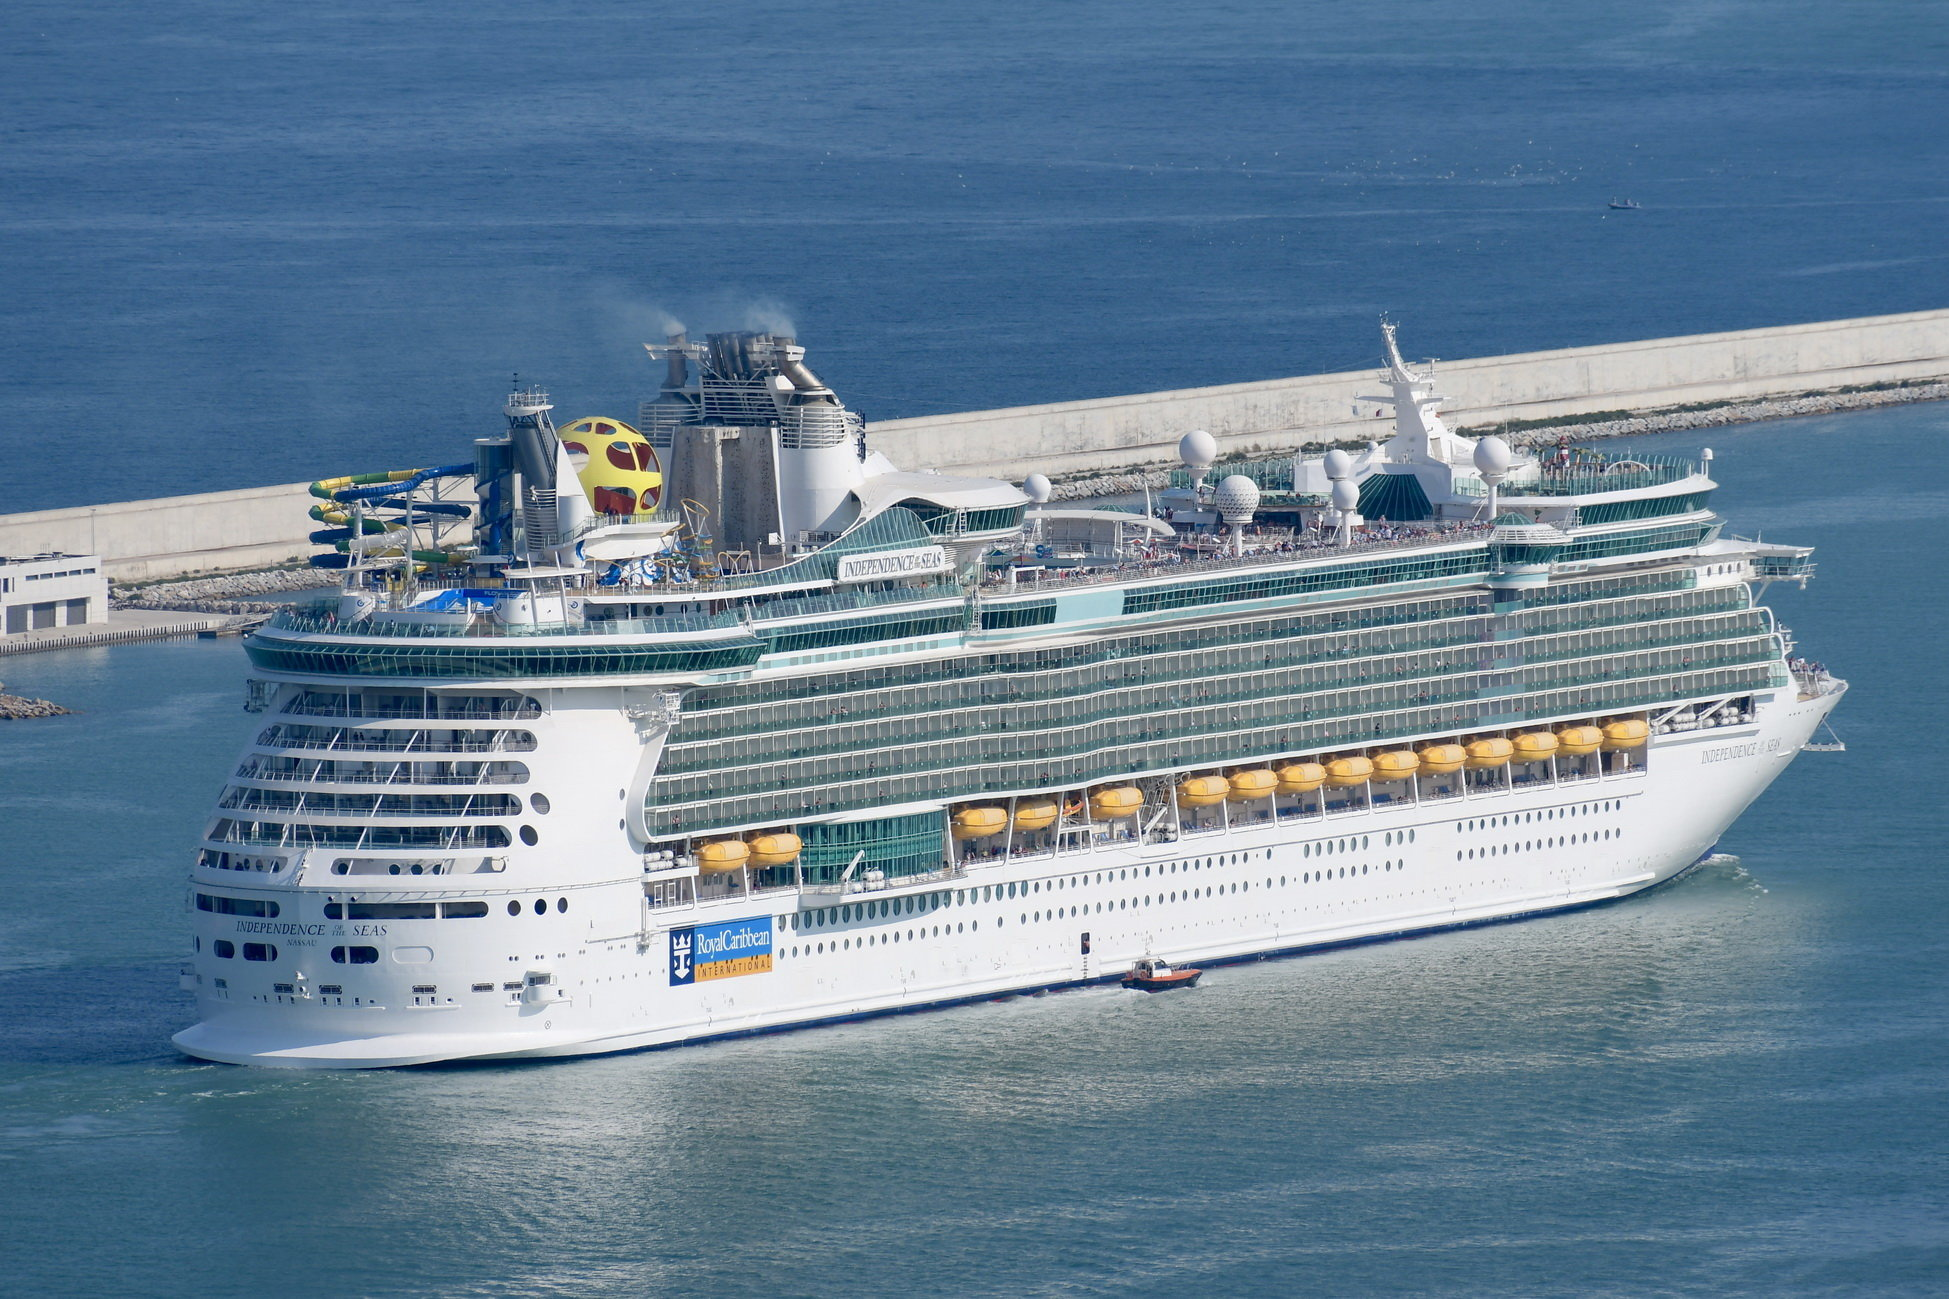 Independence of the Seas_22-06-18_Barcelona_7